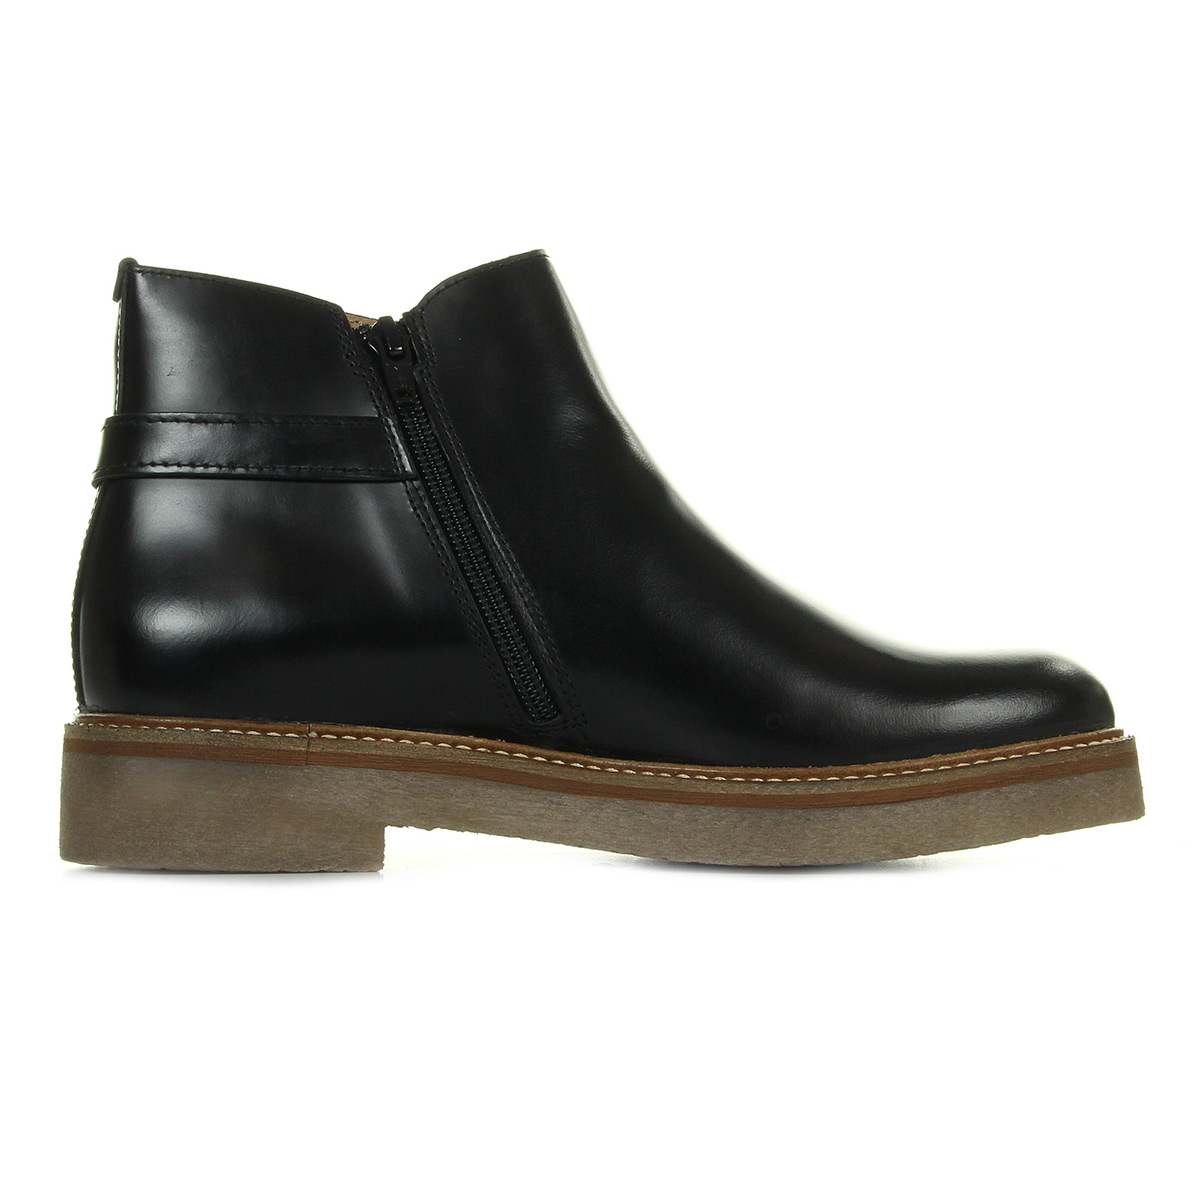 Boots Kickers Oximore Cuir Polido Noir 2dozbqw6